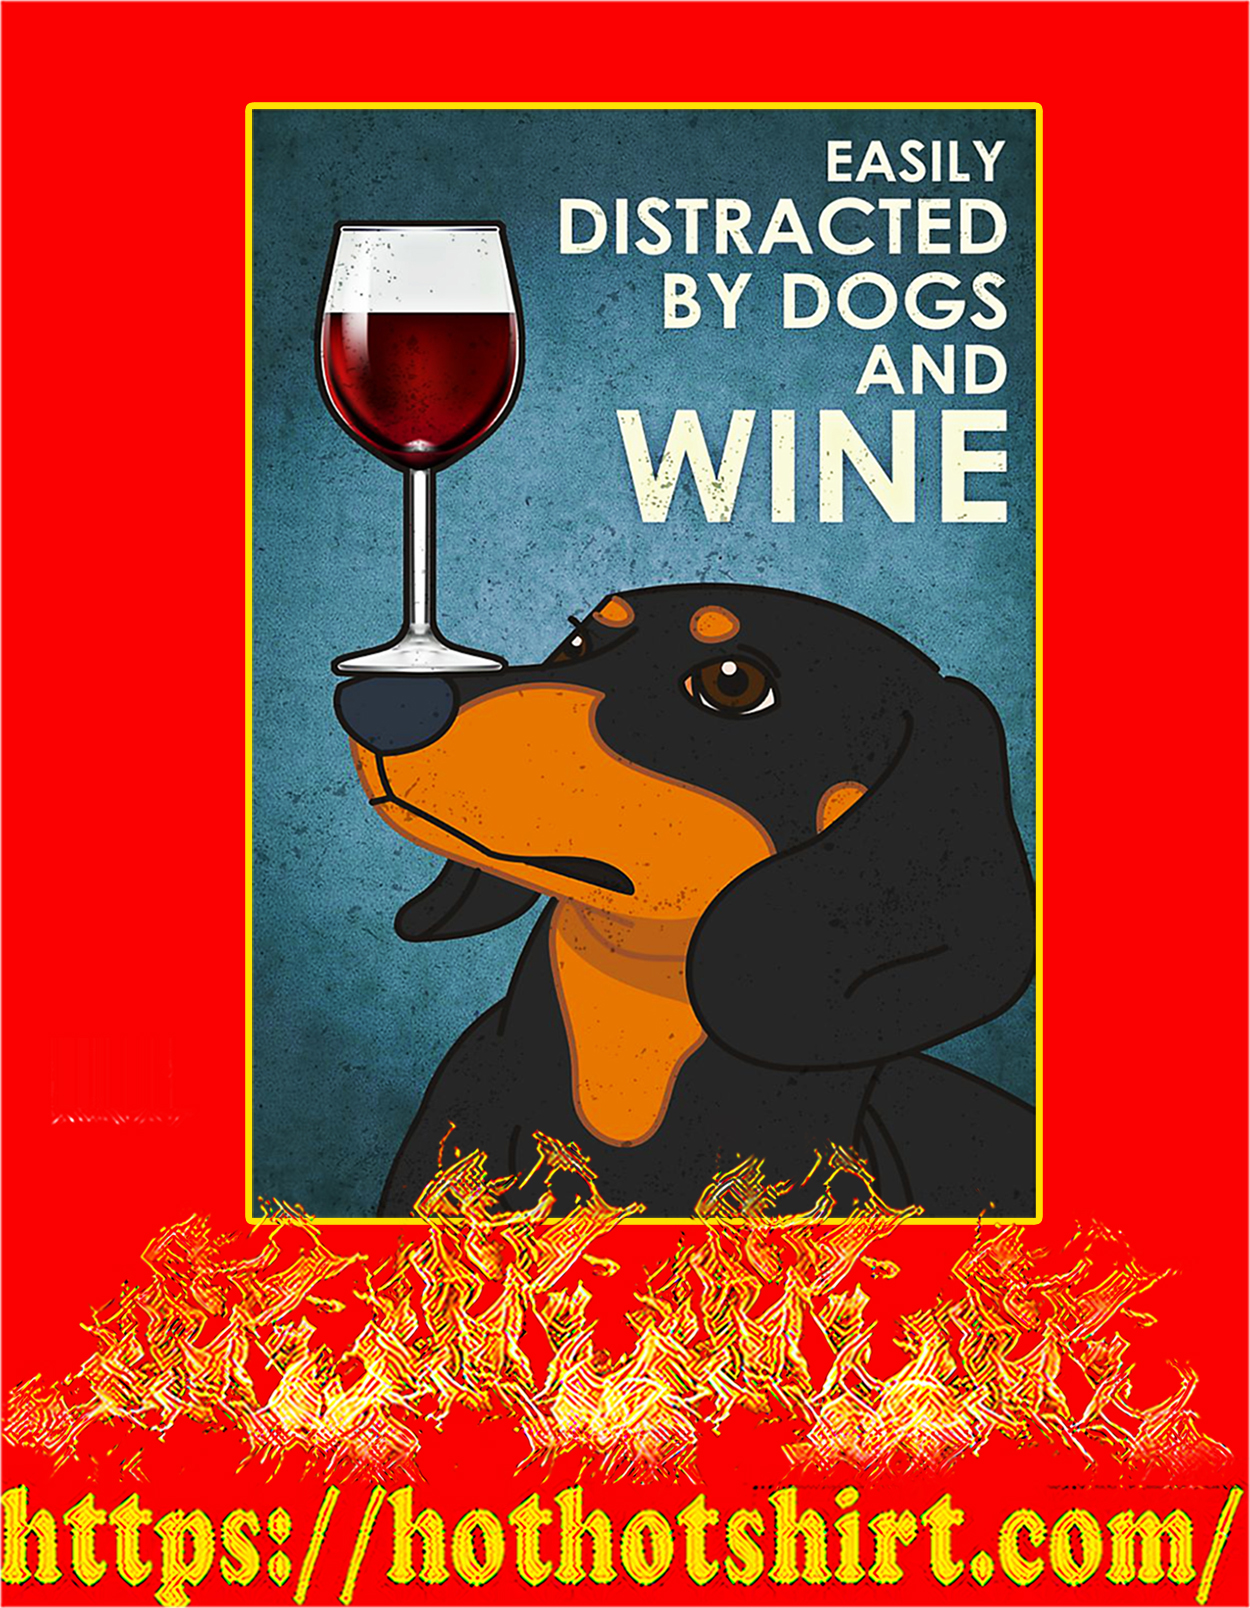 Dachshund Easily distracted by dogs and wine poster - A3